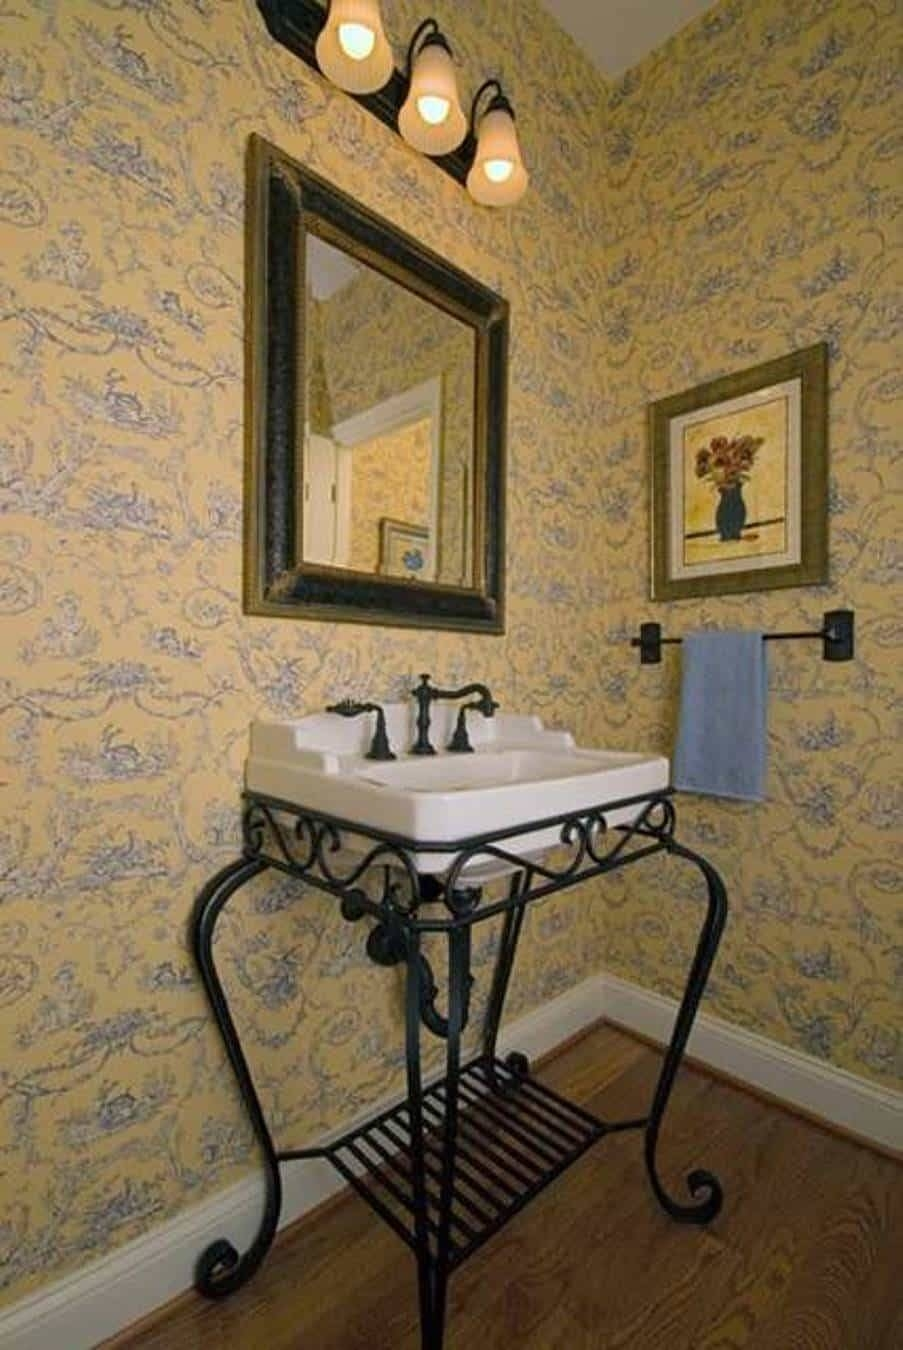 Country French Style Interior Powder Room With Wallpaper And With Regard To Current Country French Wall Art (View 9 of 30)